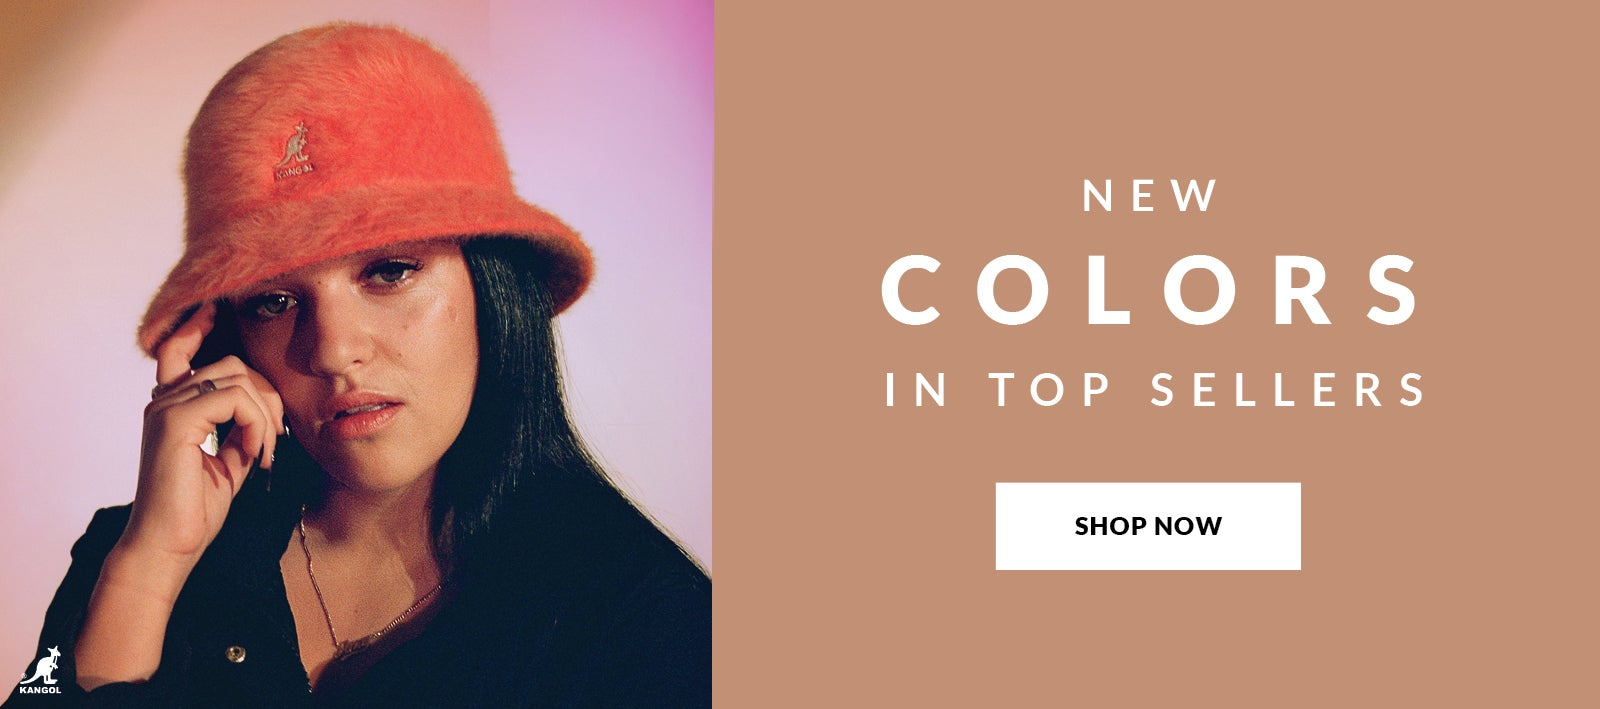 New Colors in Top Sellers